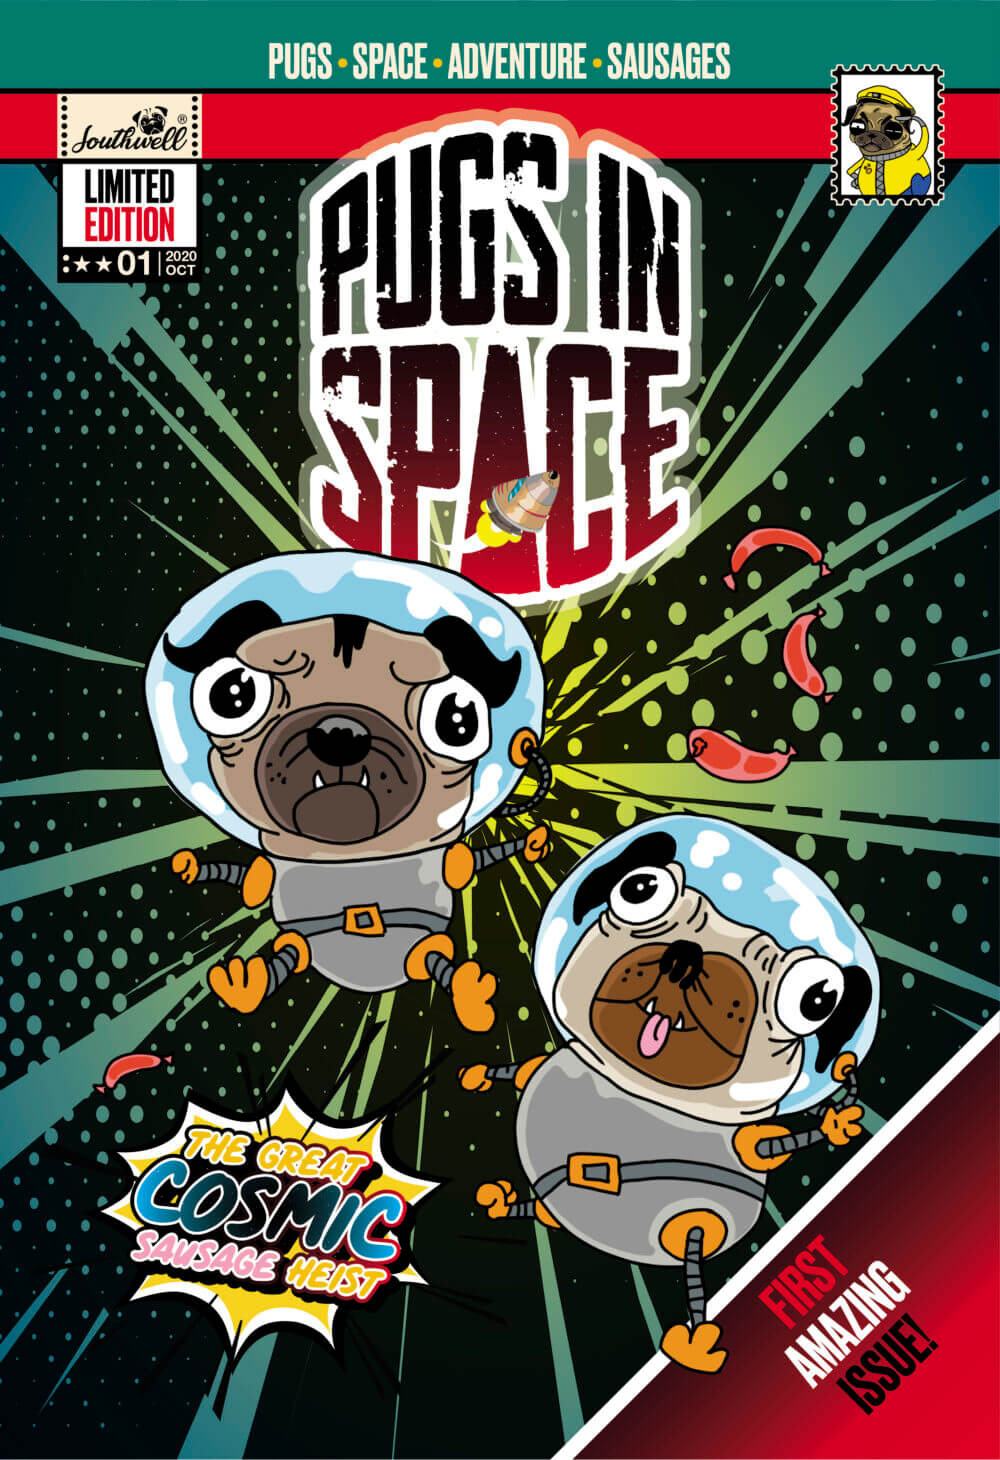 Pugs in Space Issue 01 cover design image.